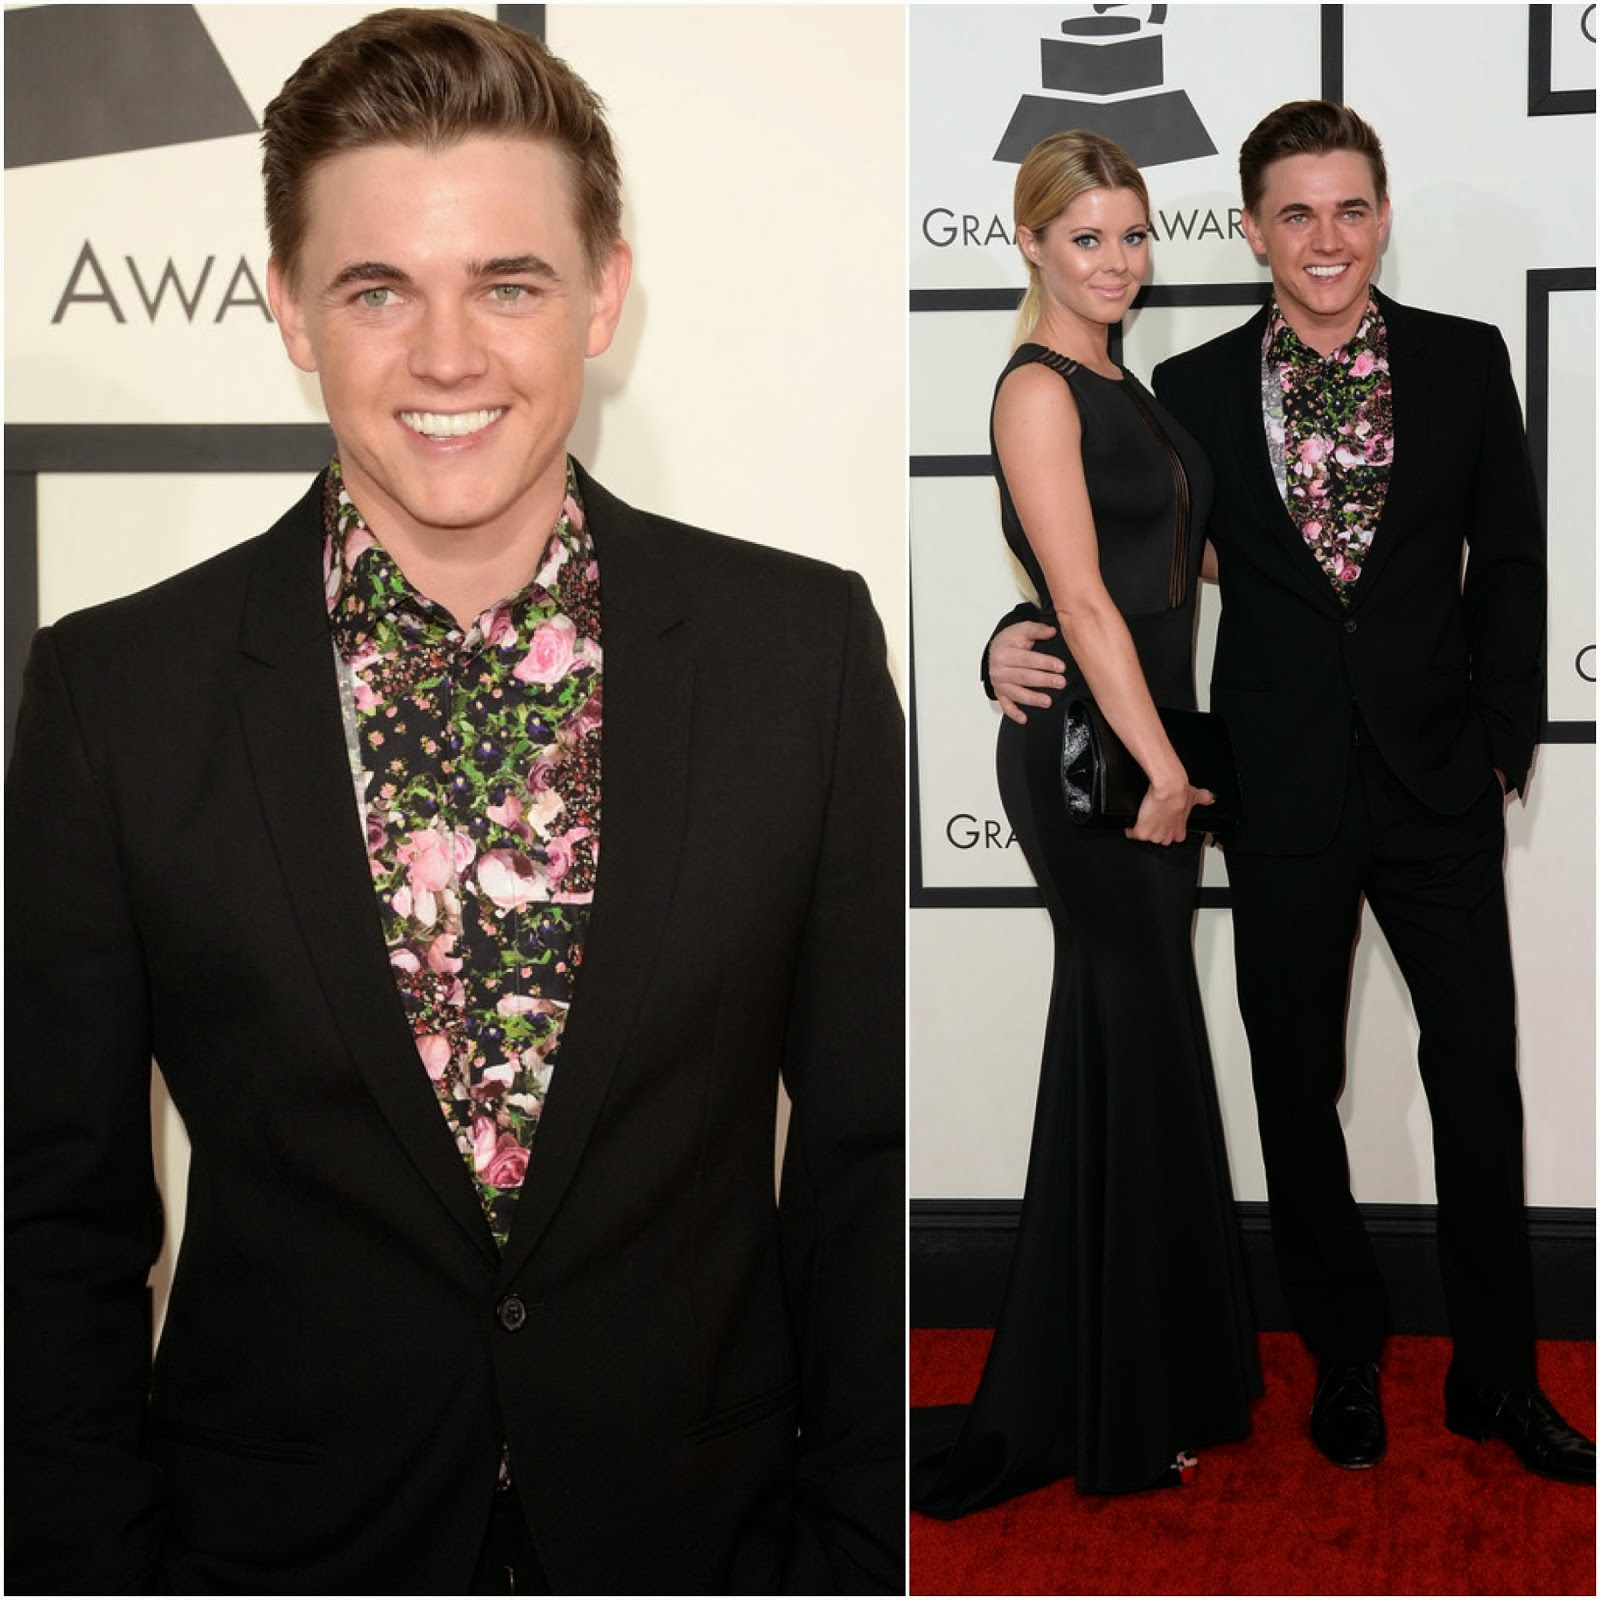 Jesse McCartney's Givenchy Flower Print Shirt - 56th GRAMMY Awards